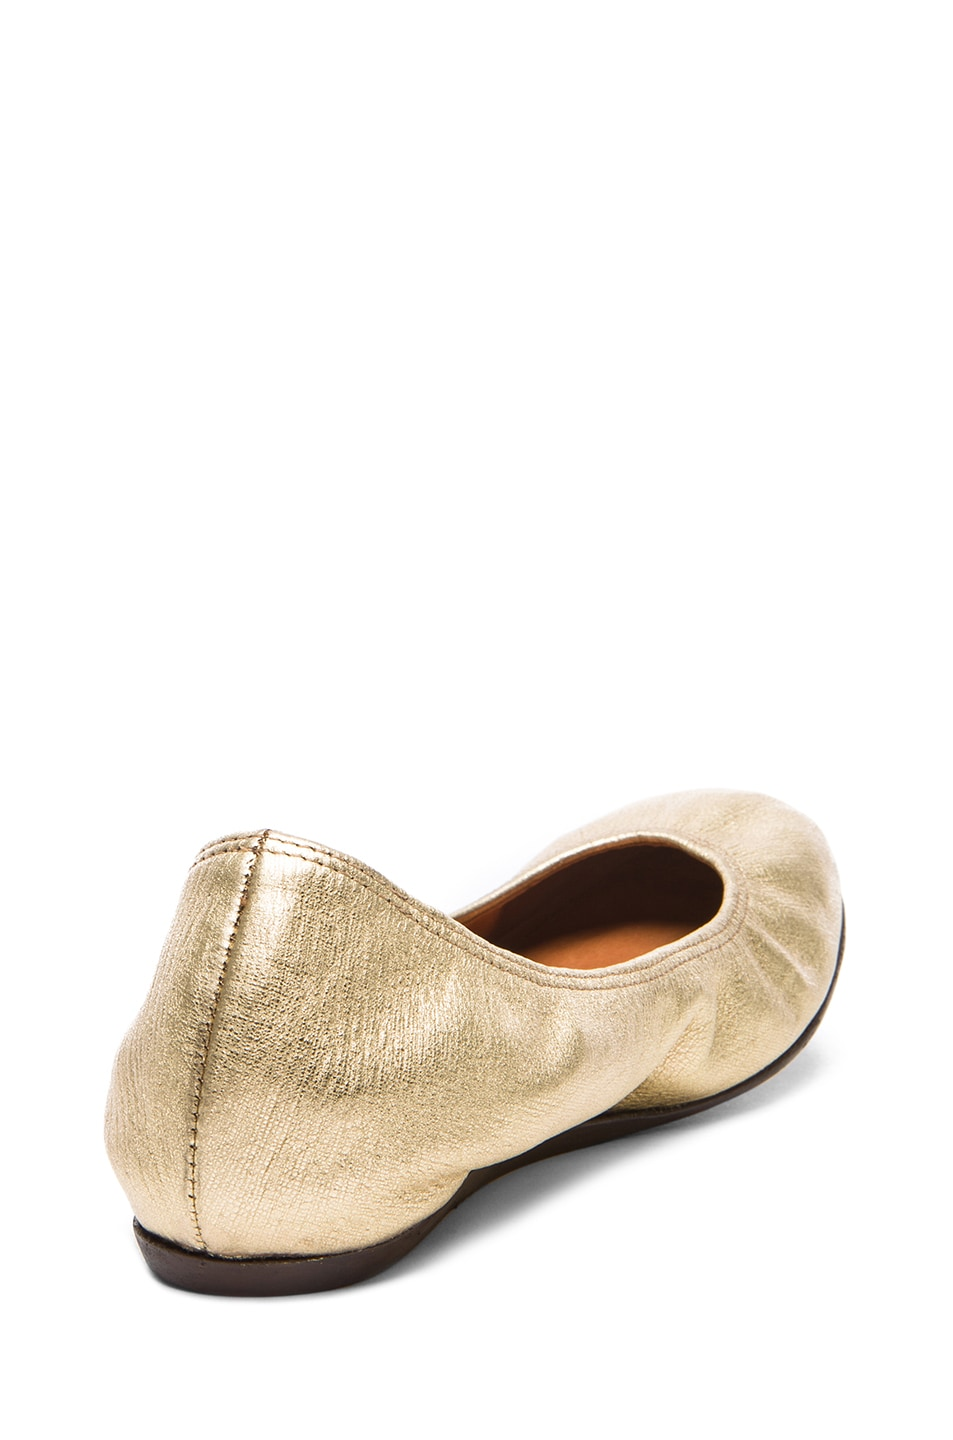 Image 3 of Lanvin Metallic Leather Ballerina Flats in Gold